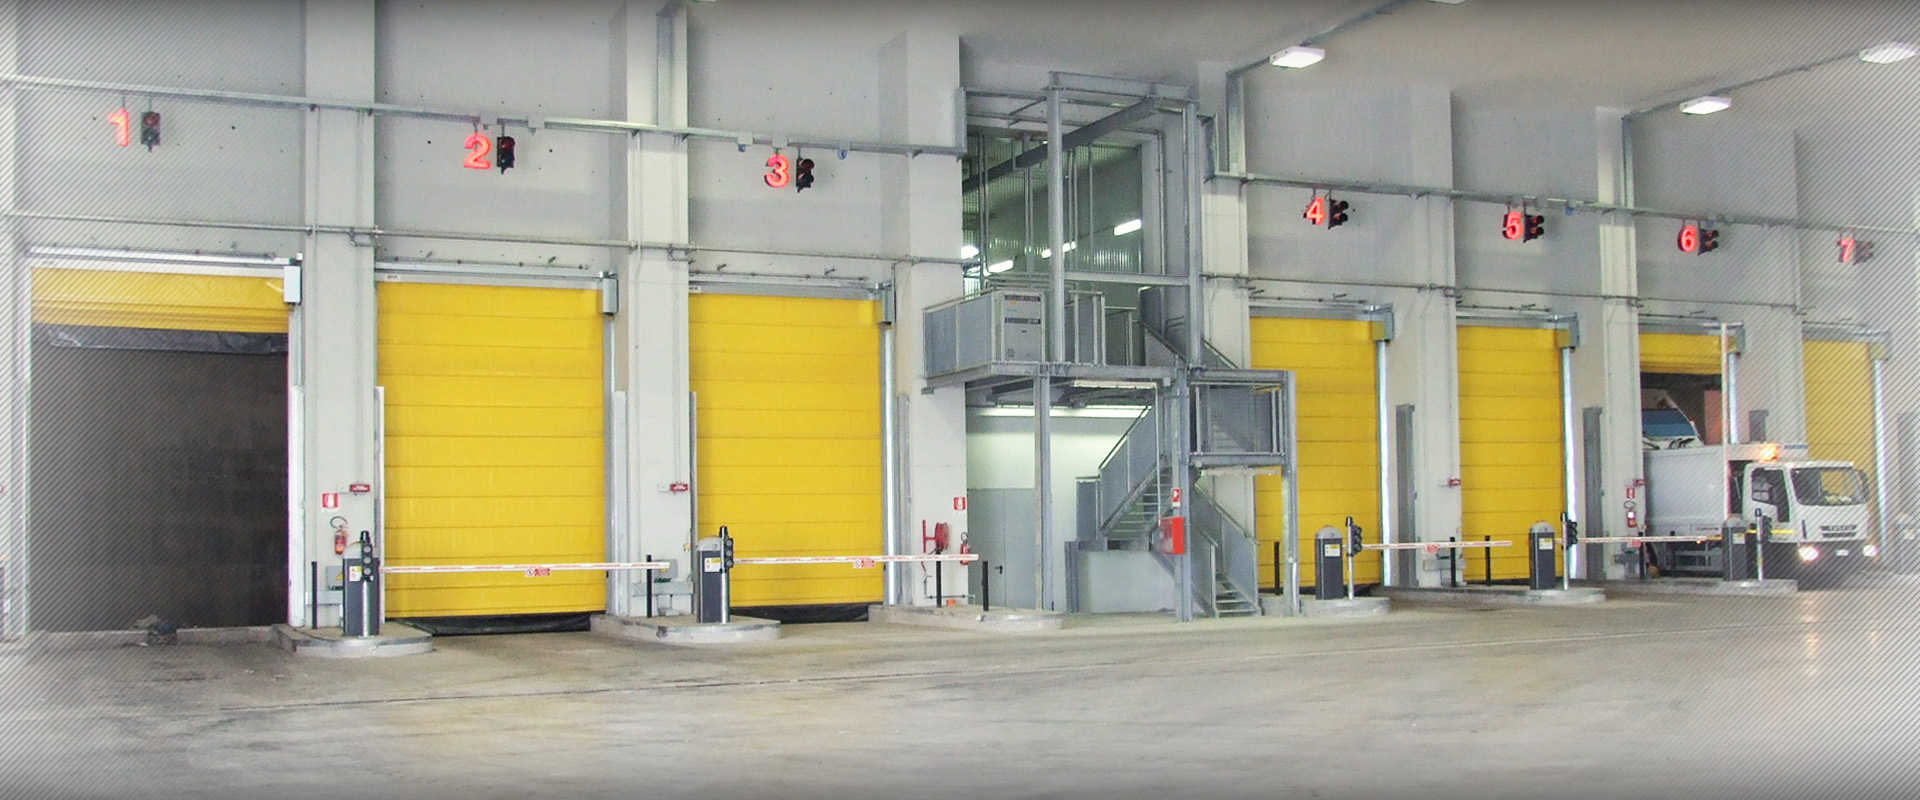 testate/Rapid DOORS FOR RECYCLING AND WASTE TREATMENT3  (1).jpg